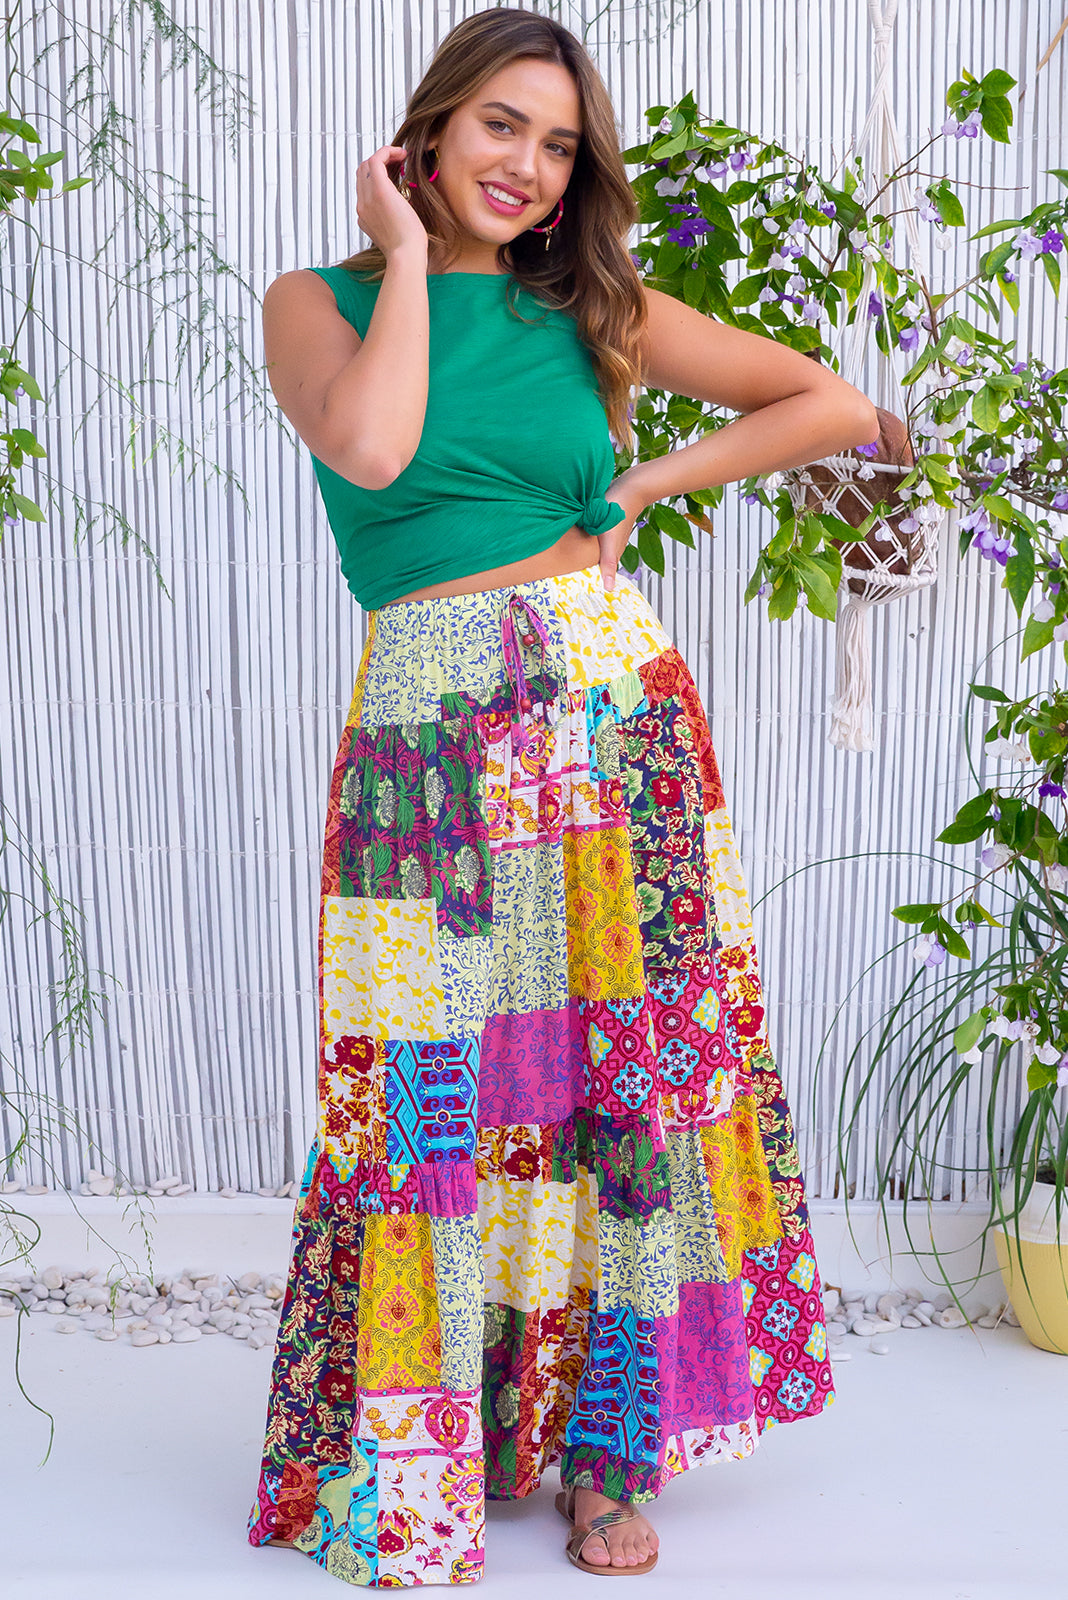 The Valencia Oasis Party Maxi Skirt features comfortable slip-on style, tiered for fullness, side pockets and 100% cotton in pink, blue and yellow multicoloured patchwork print.